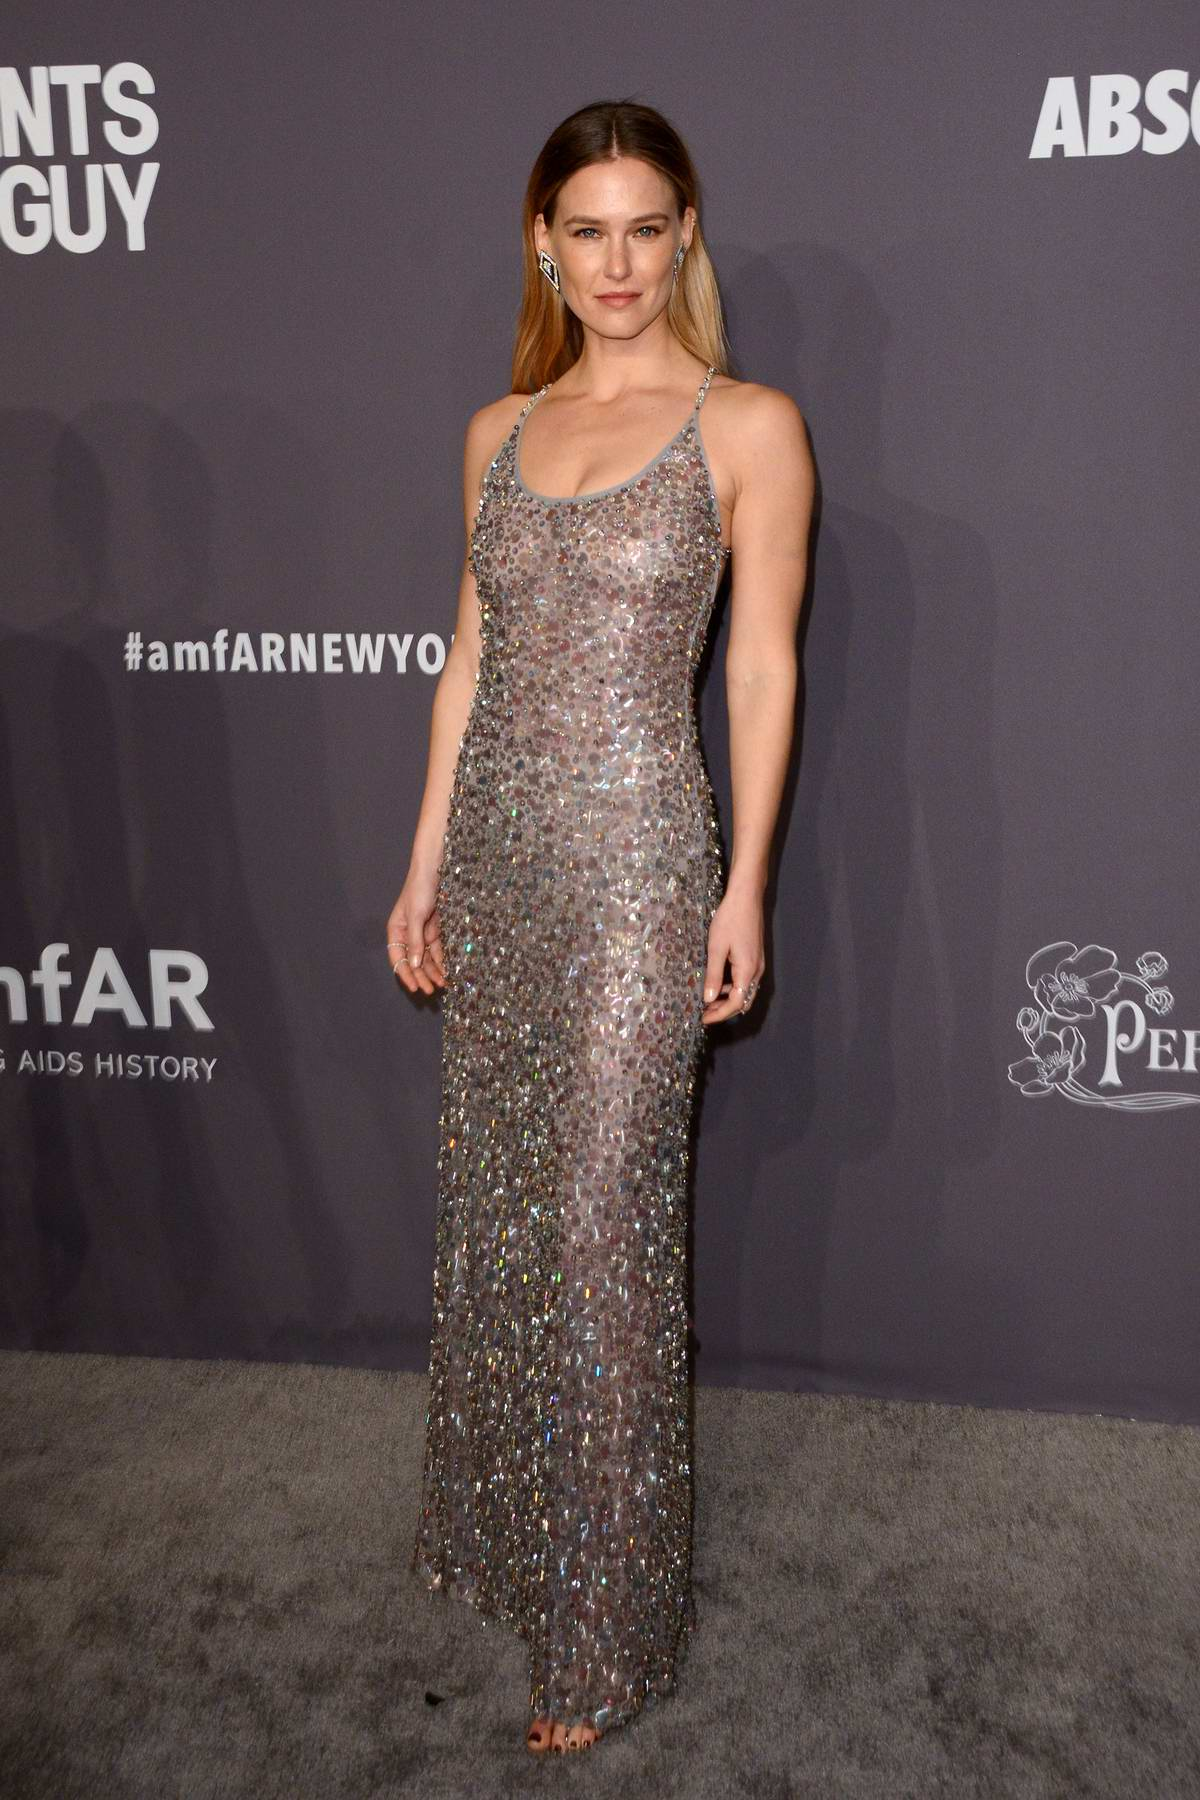 Bar Refaeli attends amfAR New York Gala 2019 at Cipriani Wall Street in New York City